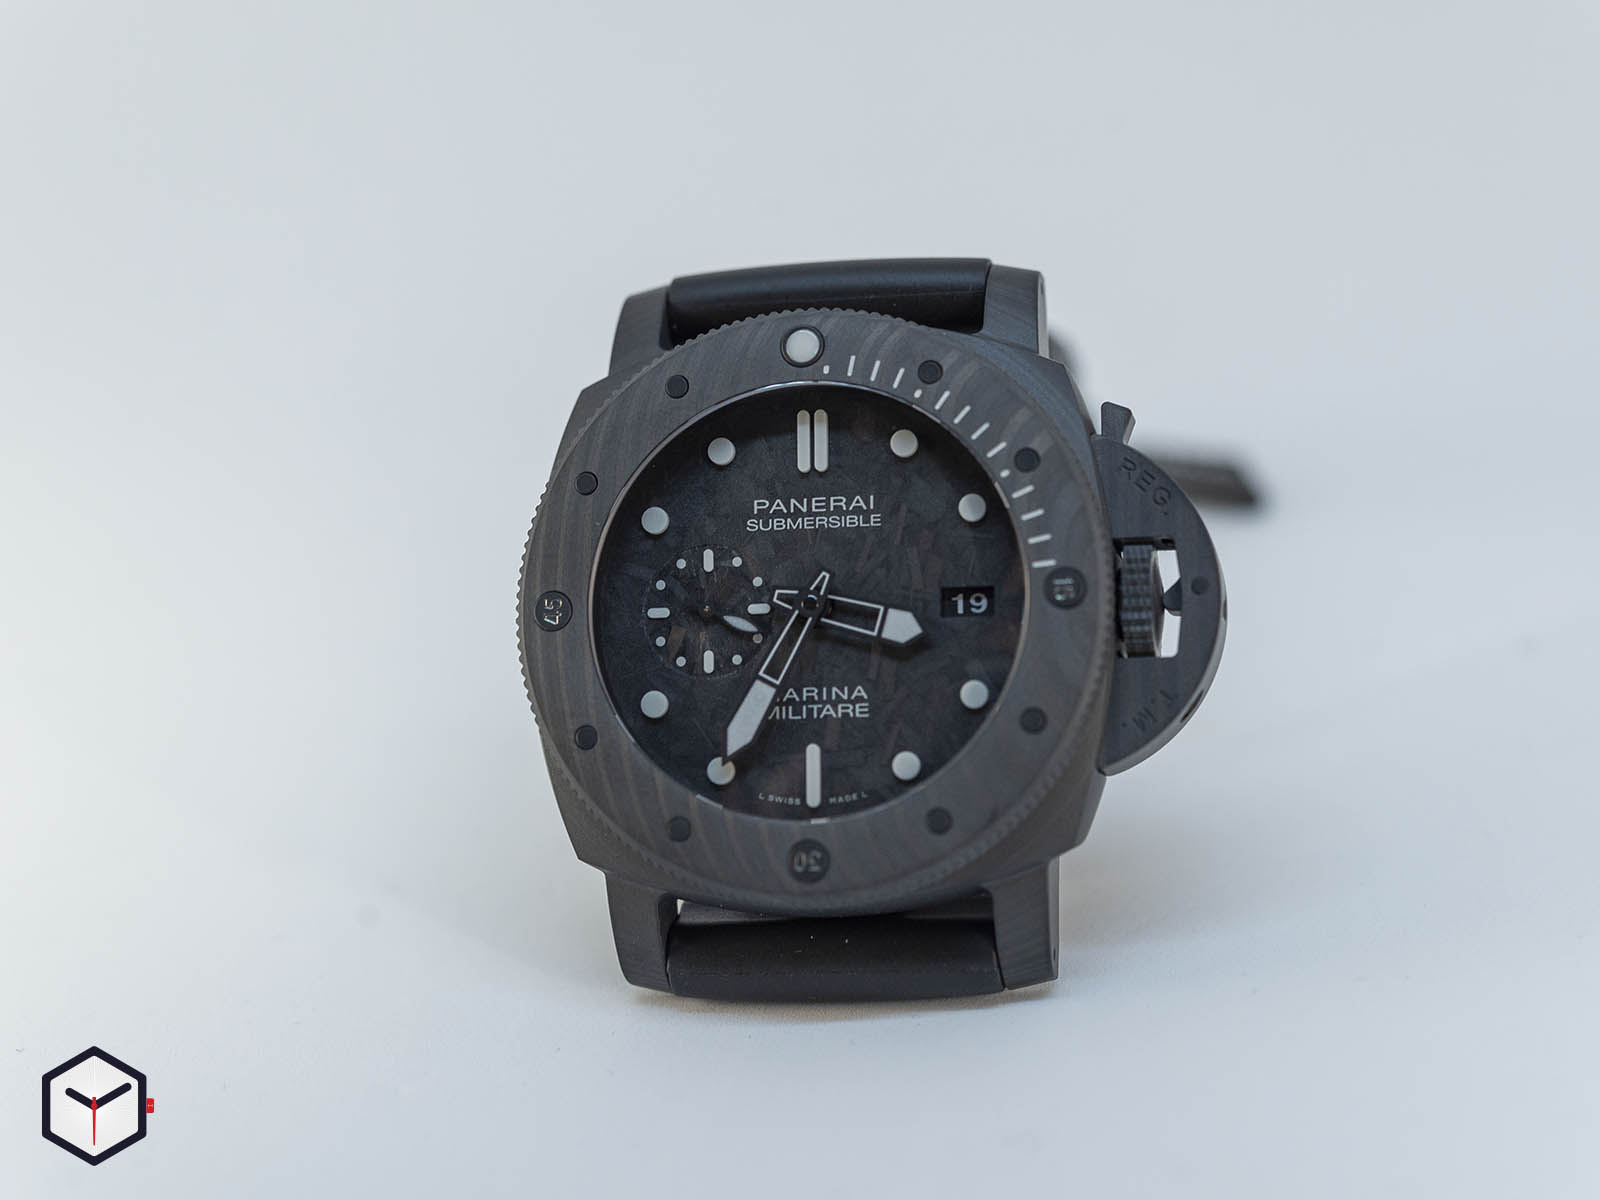 pam00979-officine-panerai-submersible-marina-militare-carbotech-47mm-sihh-2019-1.jpg